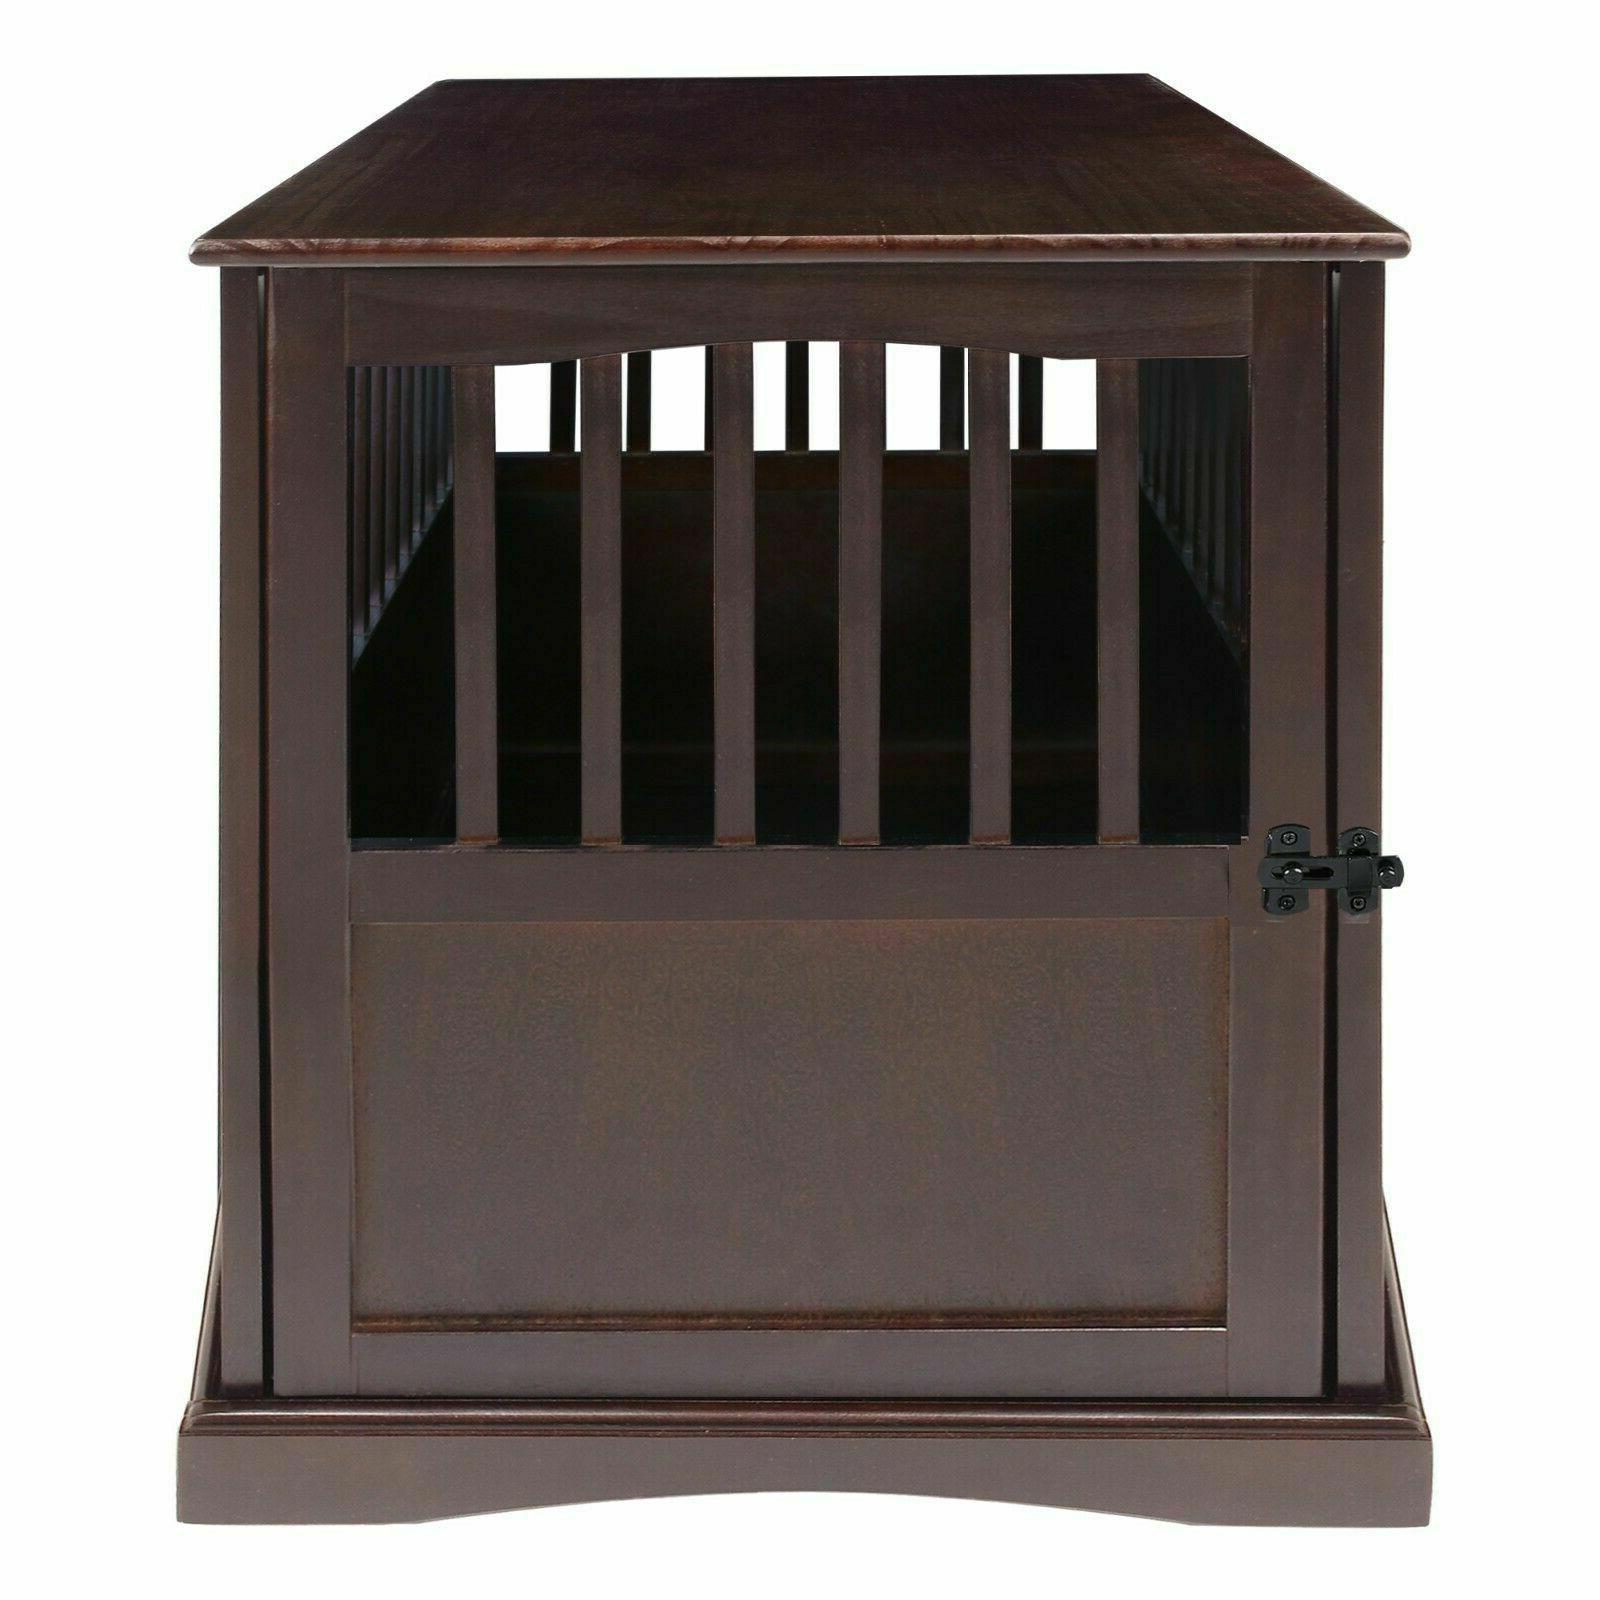 Indoor Wood Large Crate Table Big Dogs Cage Kennel Furniture